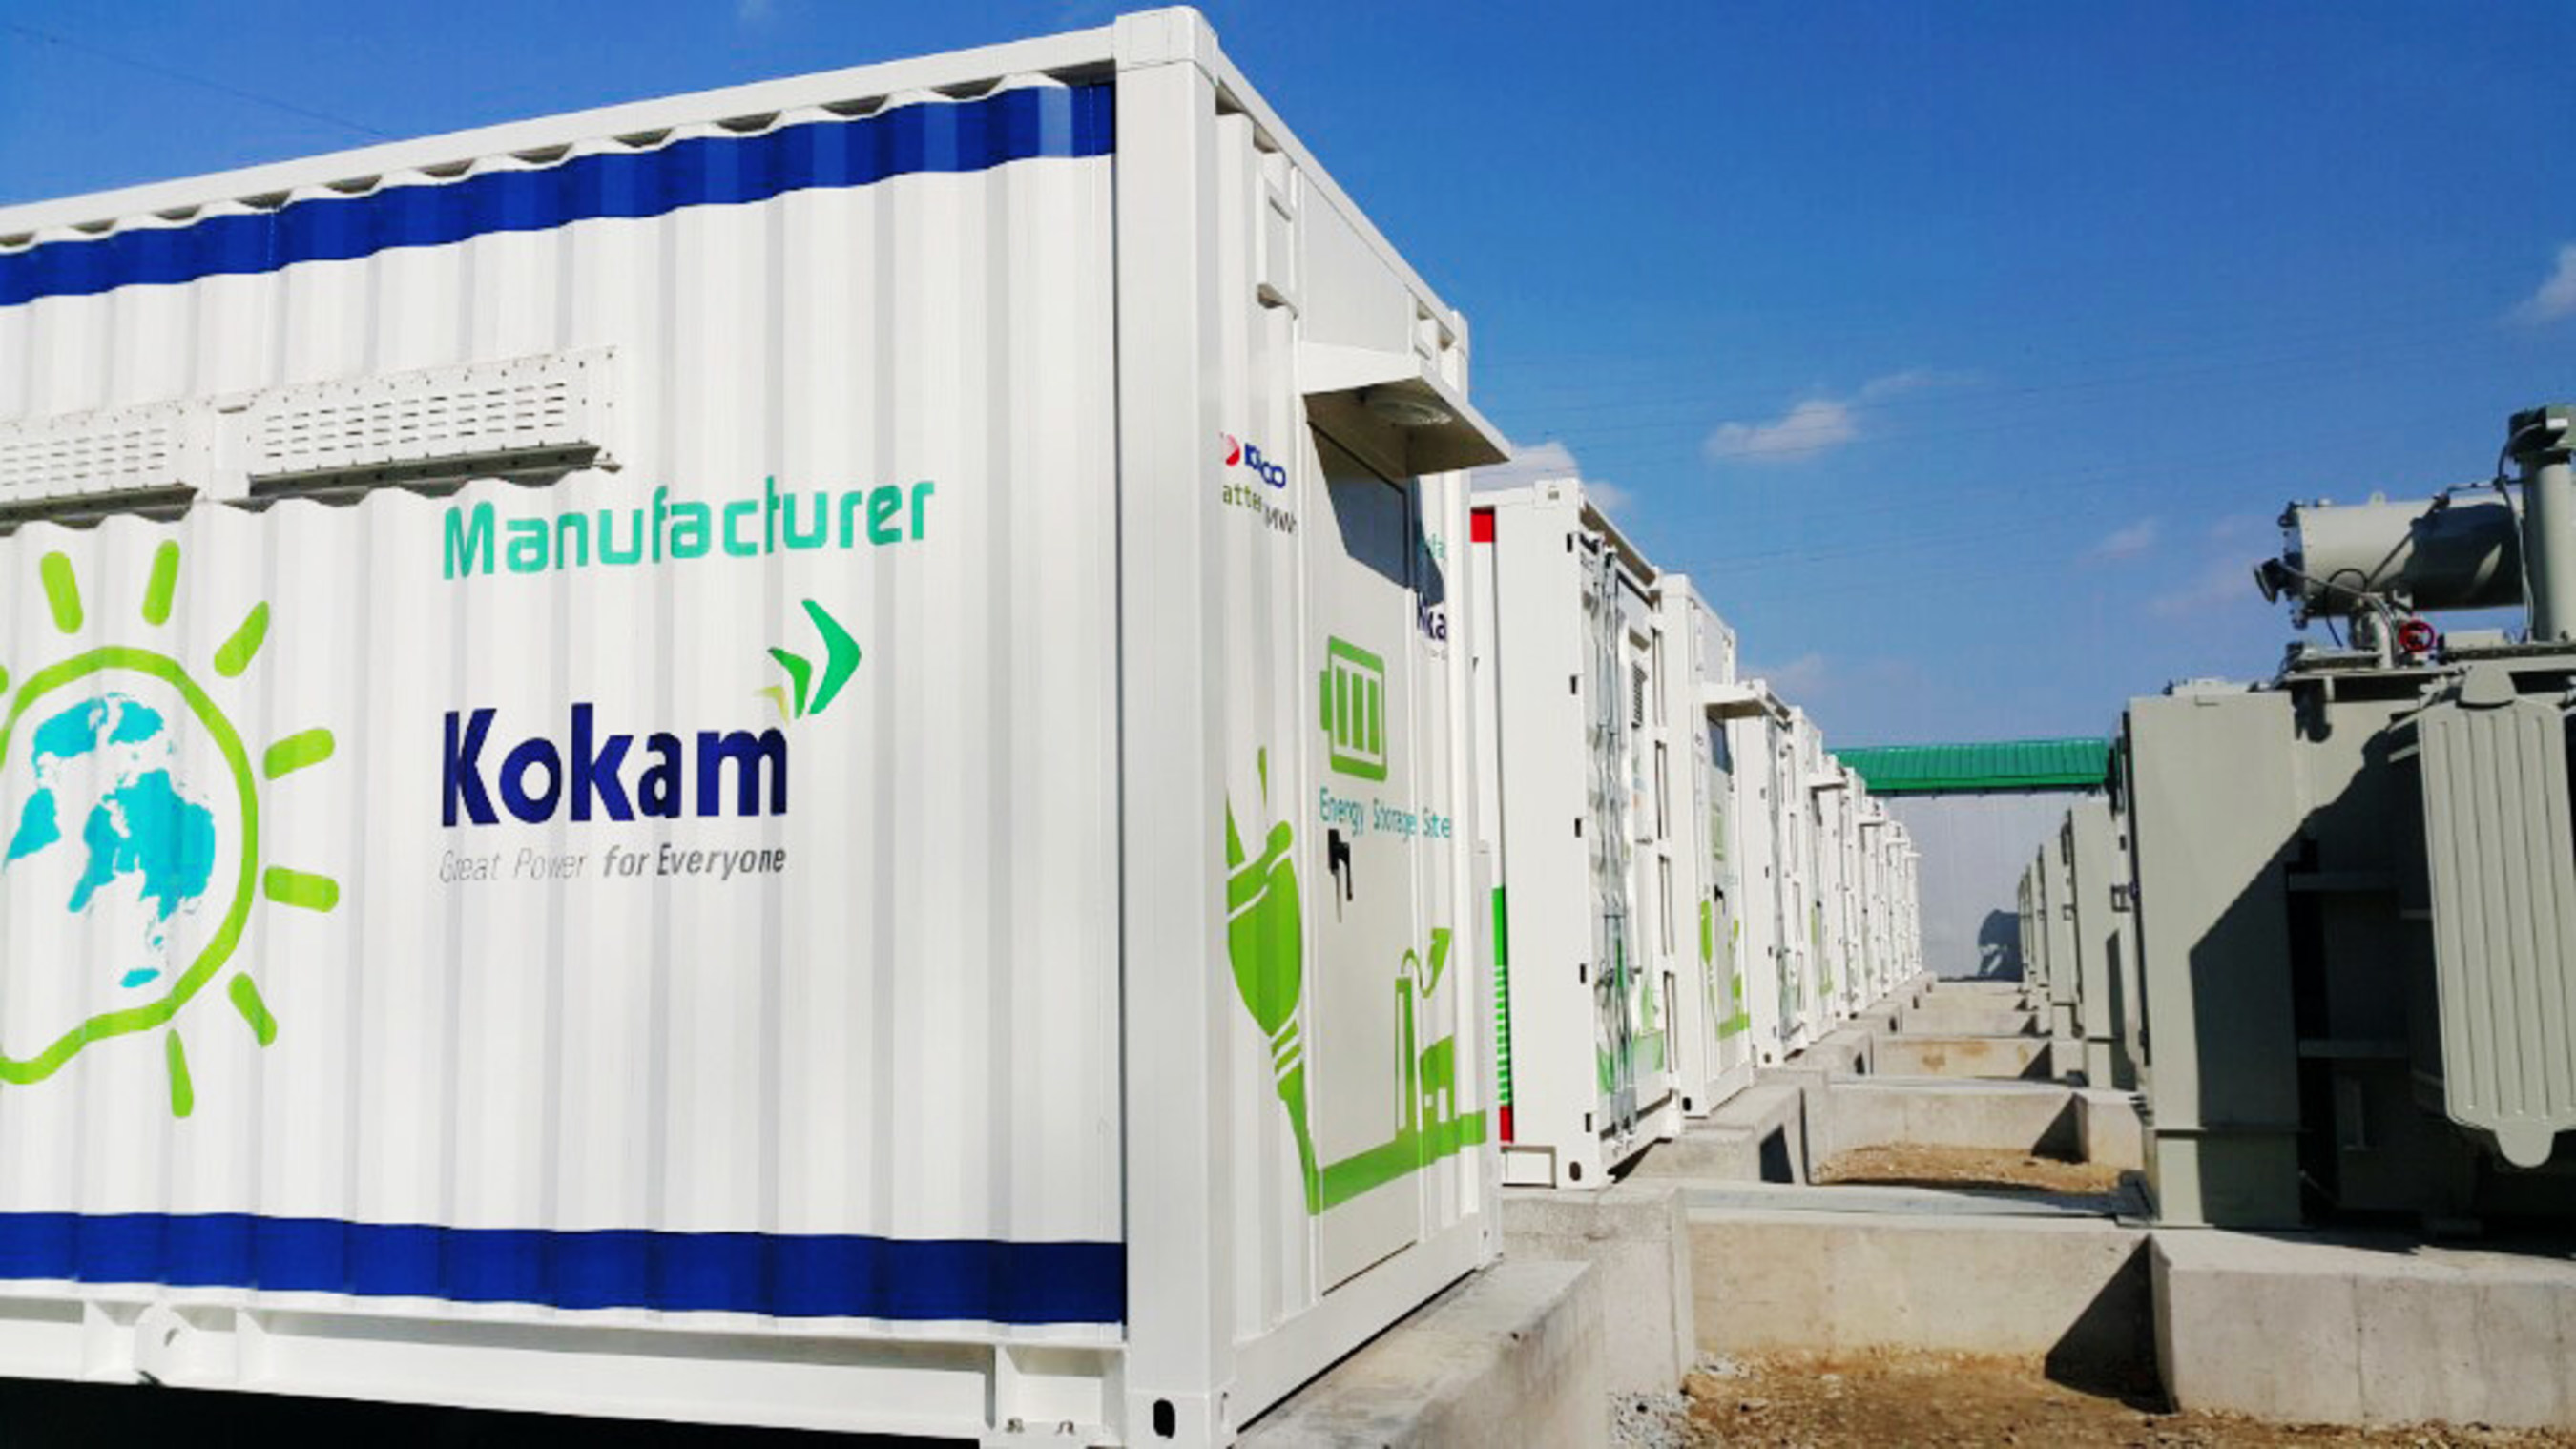 This Kokam 24-megawatt Energy Storage System (ESS), deployed for use by South Korea's largest utility, ...